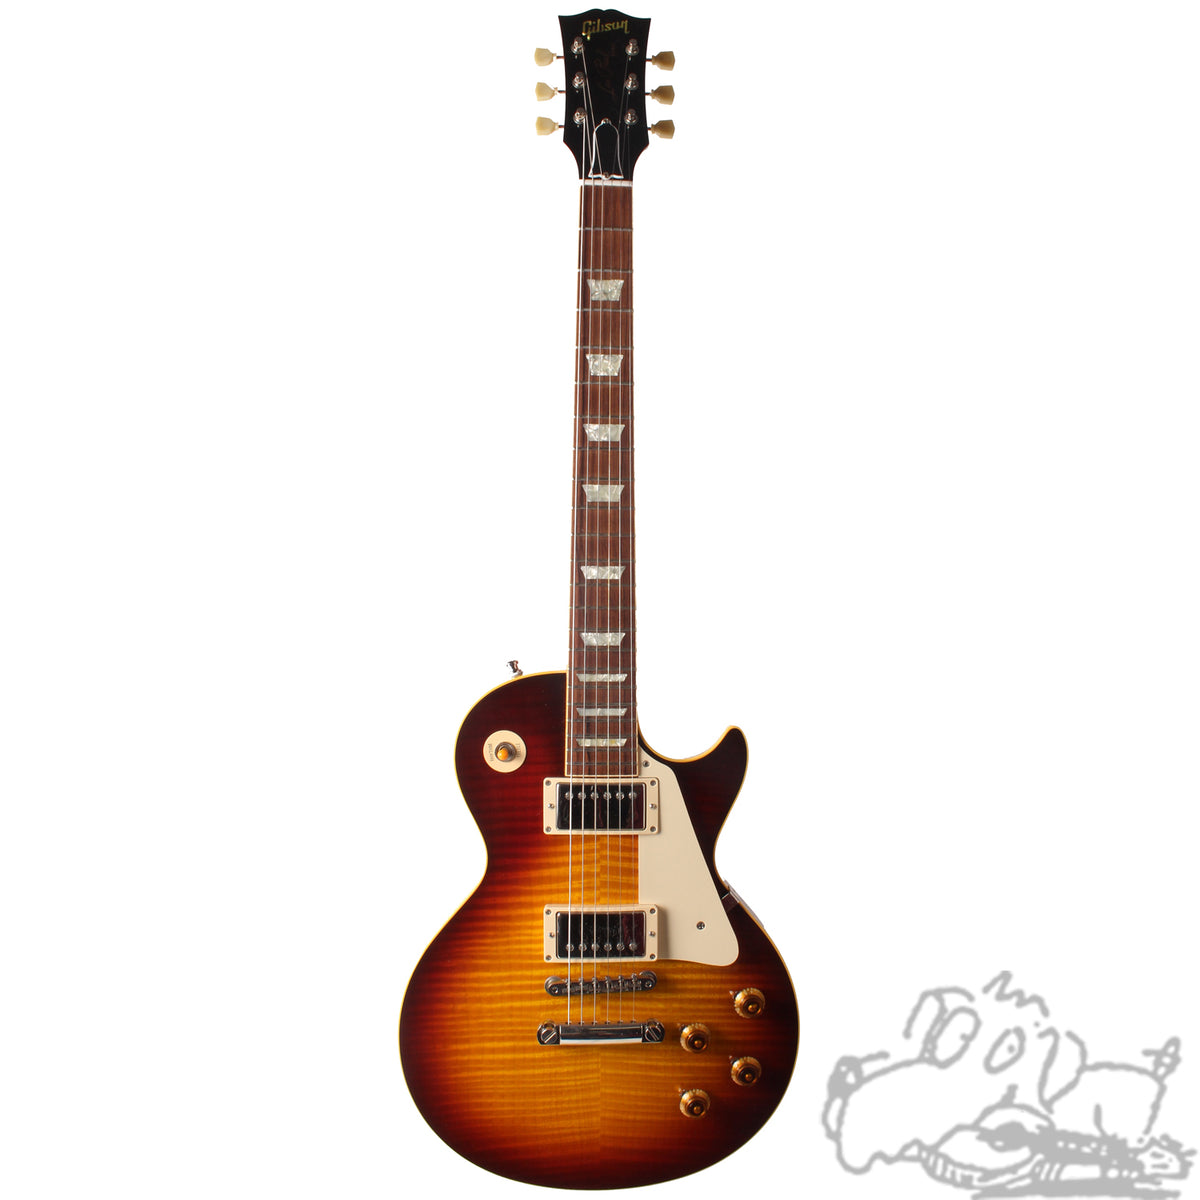 1999 Gibson Custom Shop 1959 Reissue Less Paul 40th Anniversary